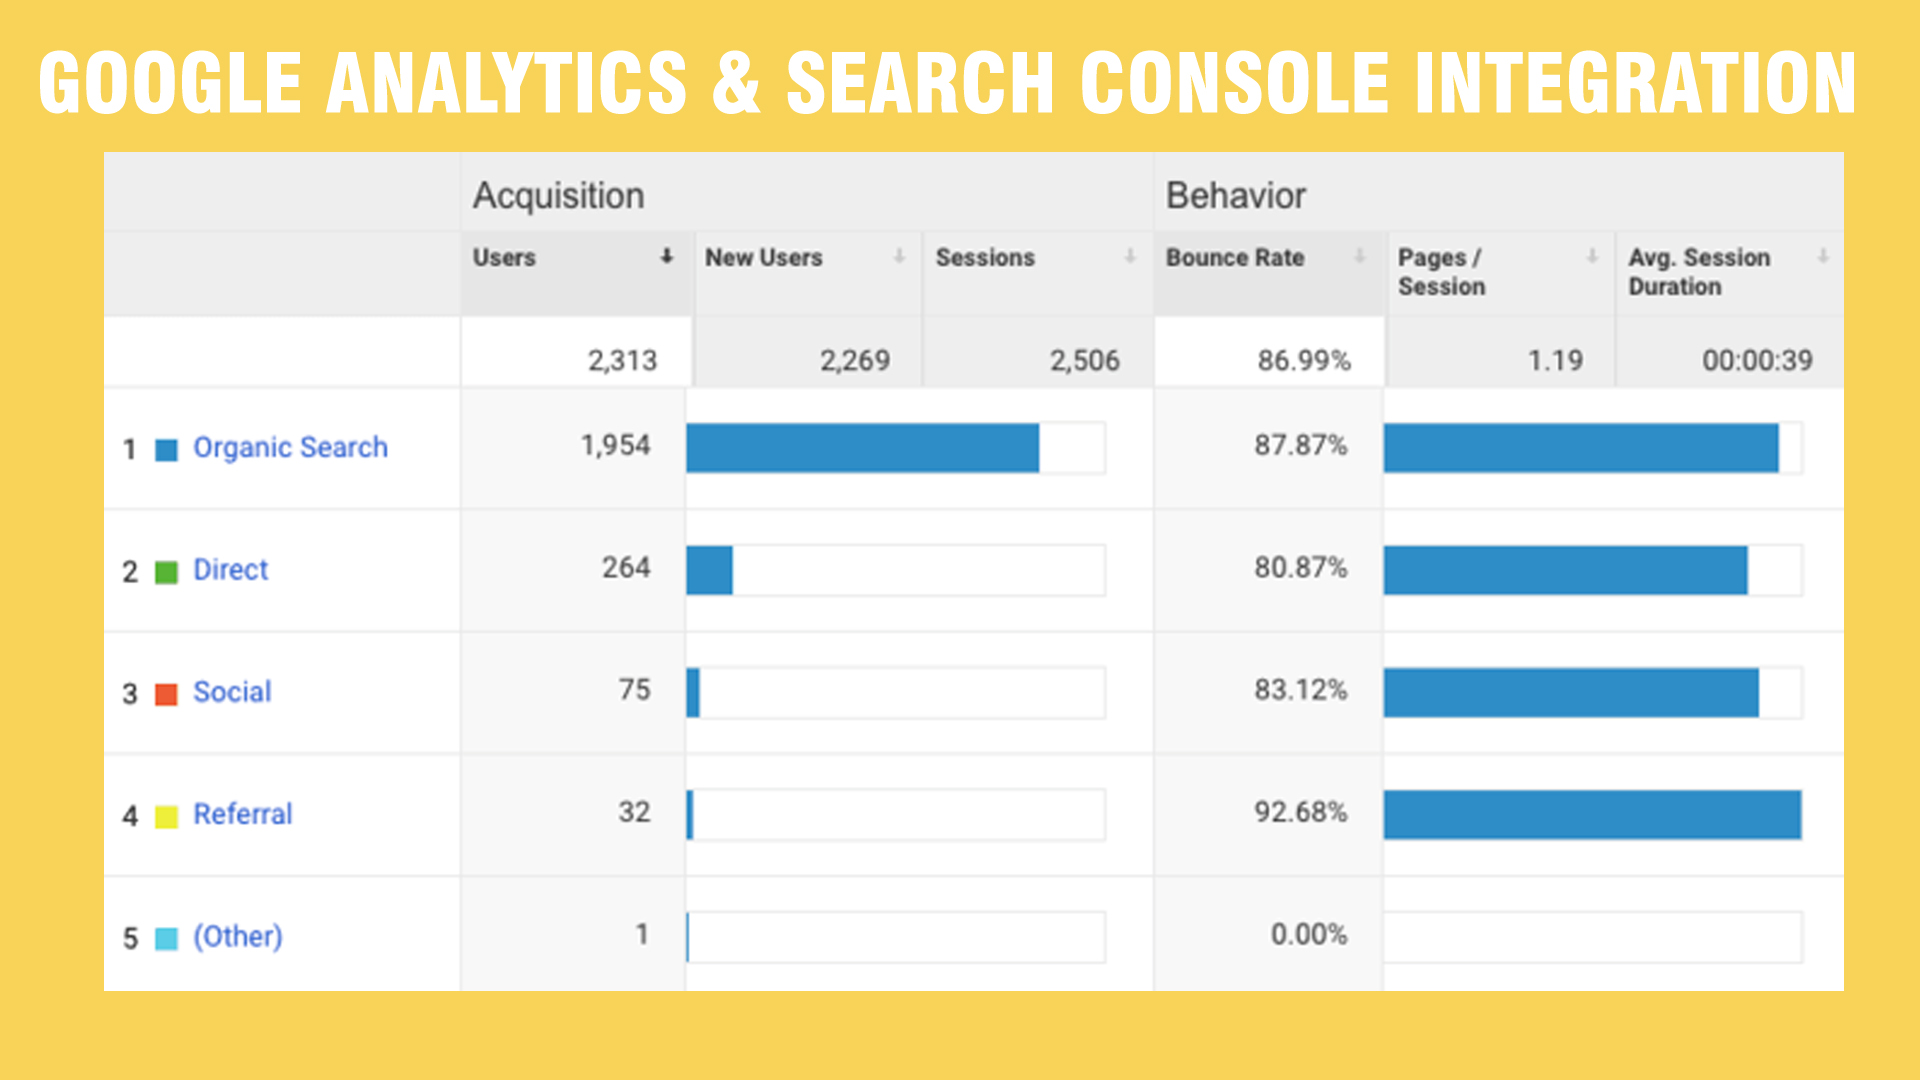 Google Analytics & Search Console Integration